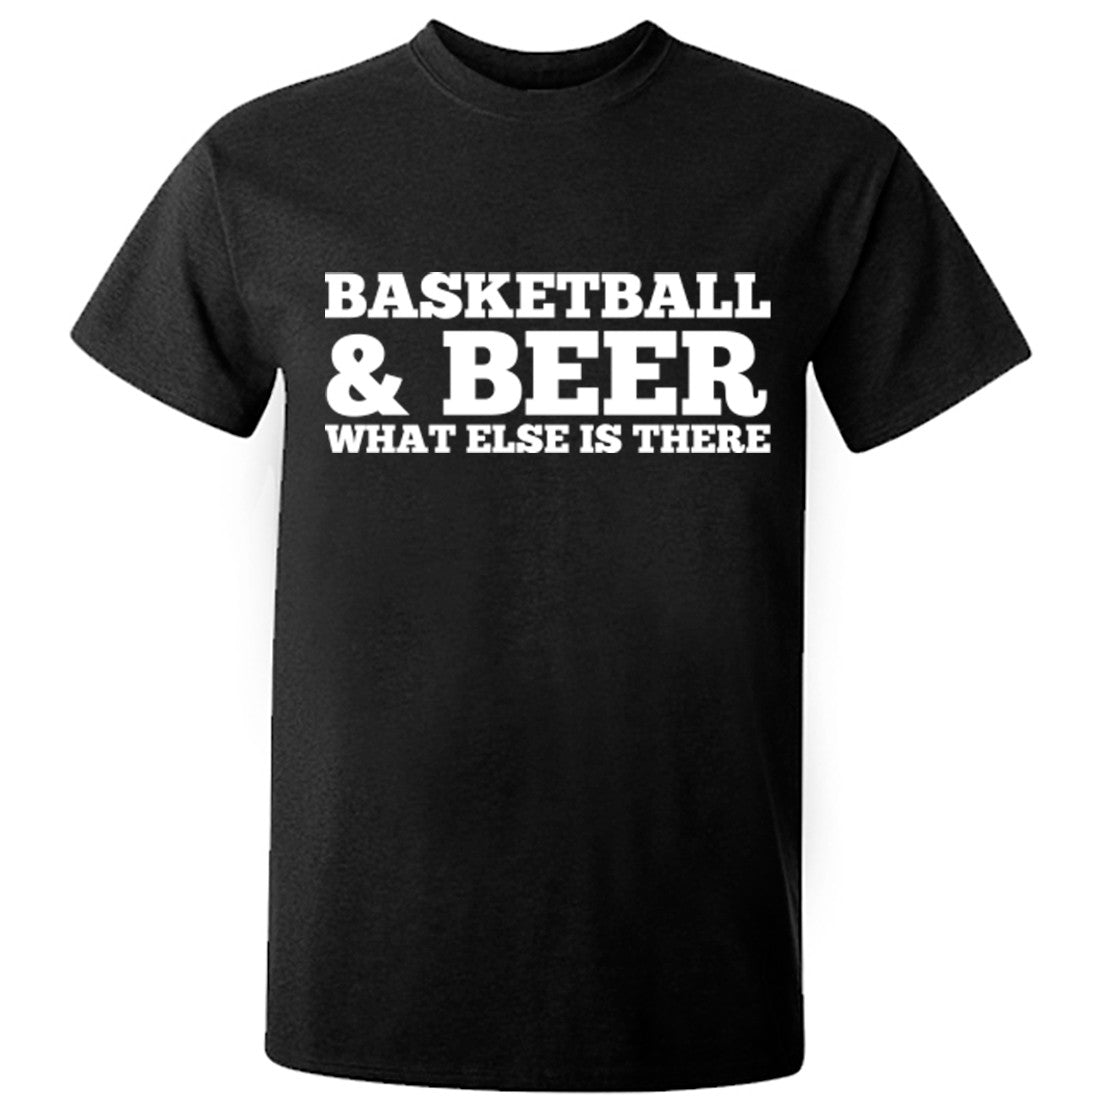 Basketball And Beer What Else Is There Unisex Fit T-Shirt K0673